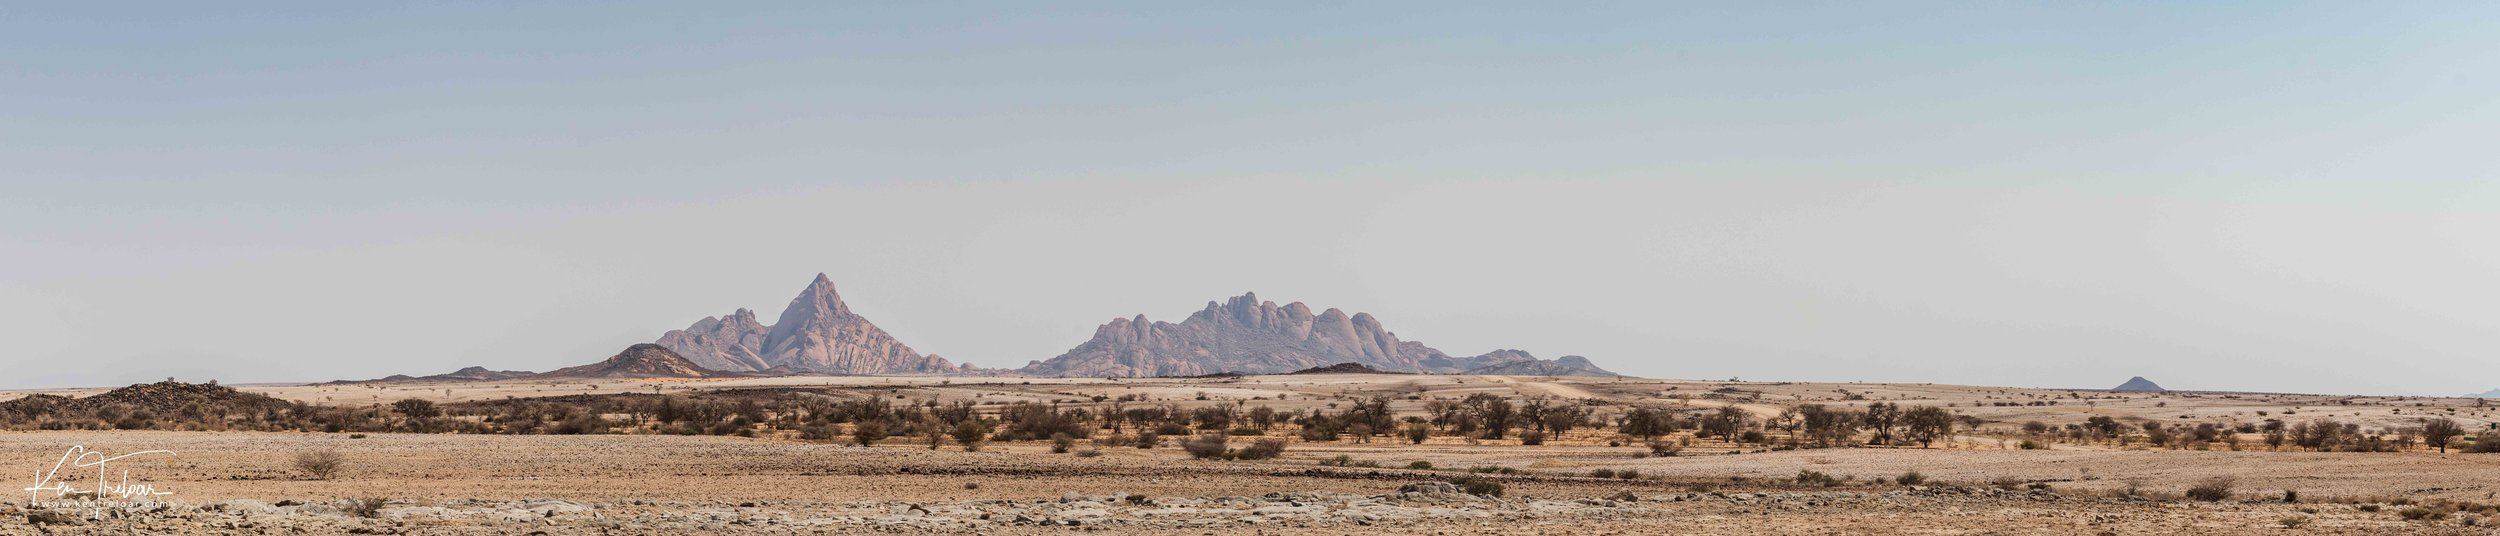 Spitzkoppe View SuperWide - Namibia (shot on a tripod) Camera: Canon 200D Lens: 24-70mm f/4 L 15370 x 3295